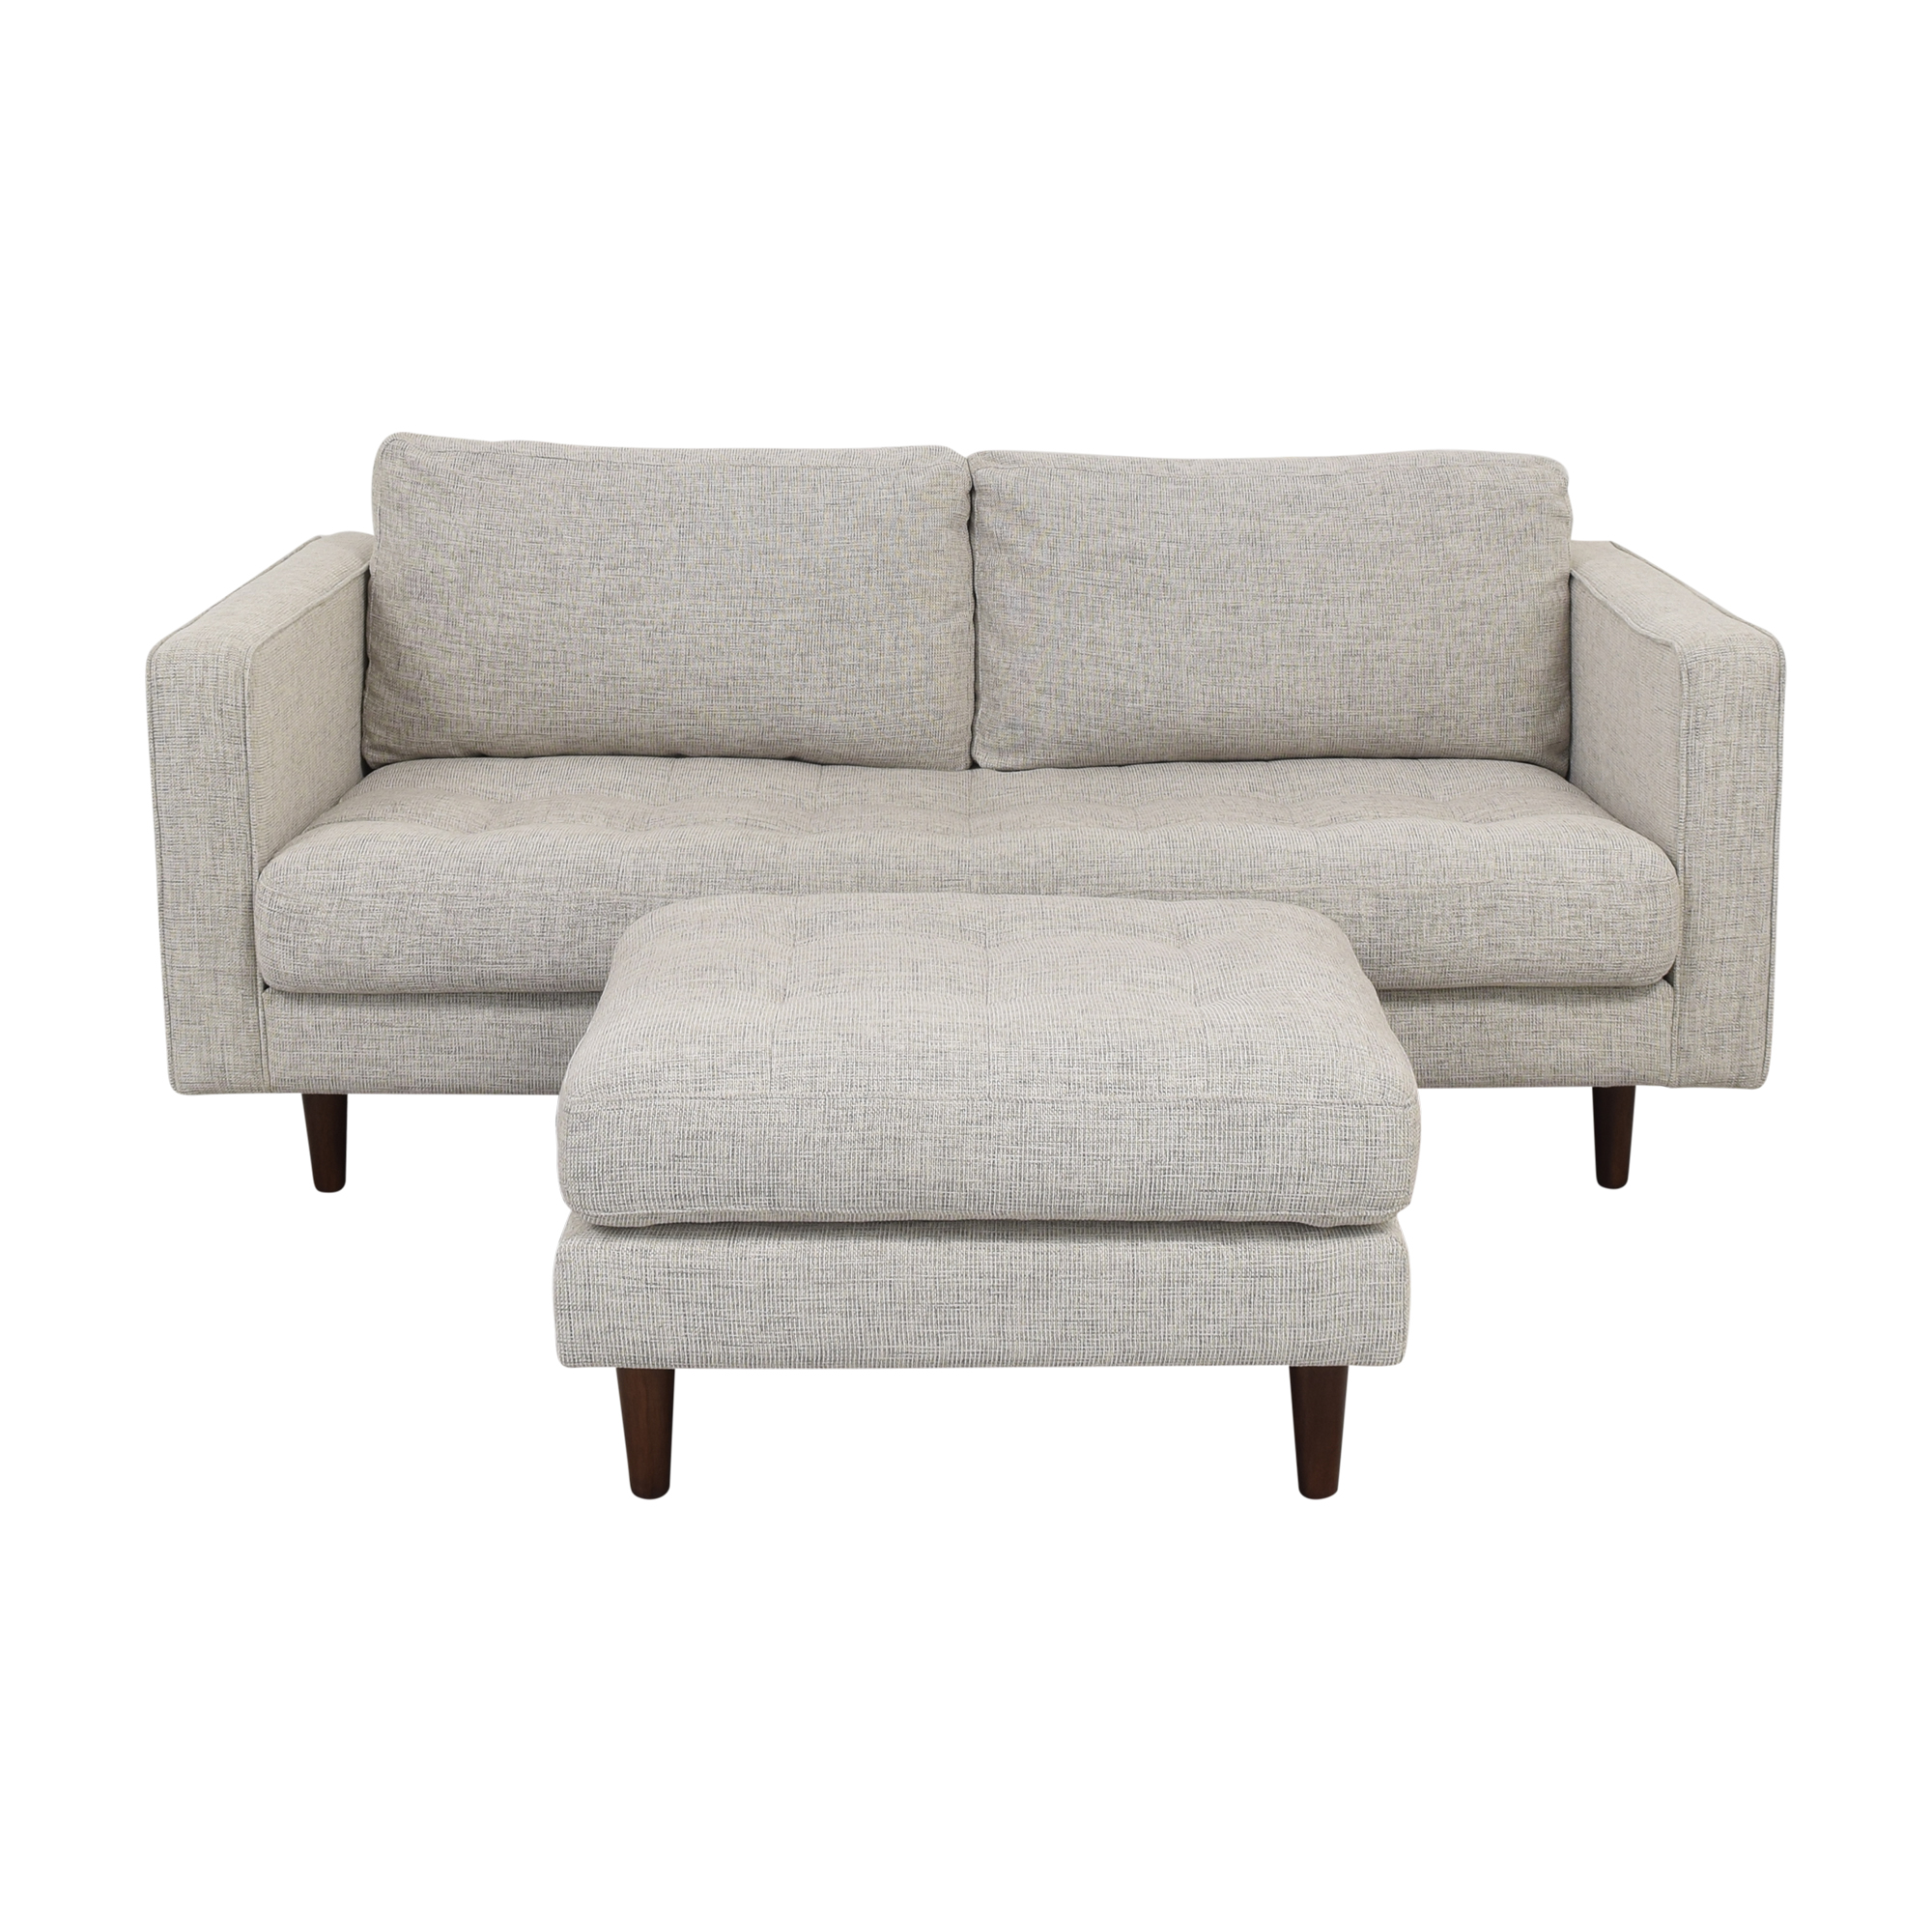 Article Article Sven Sofa with Ottoman ct